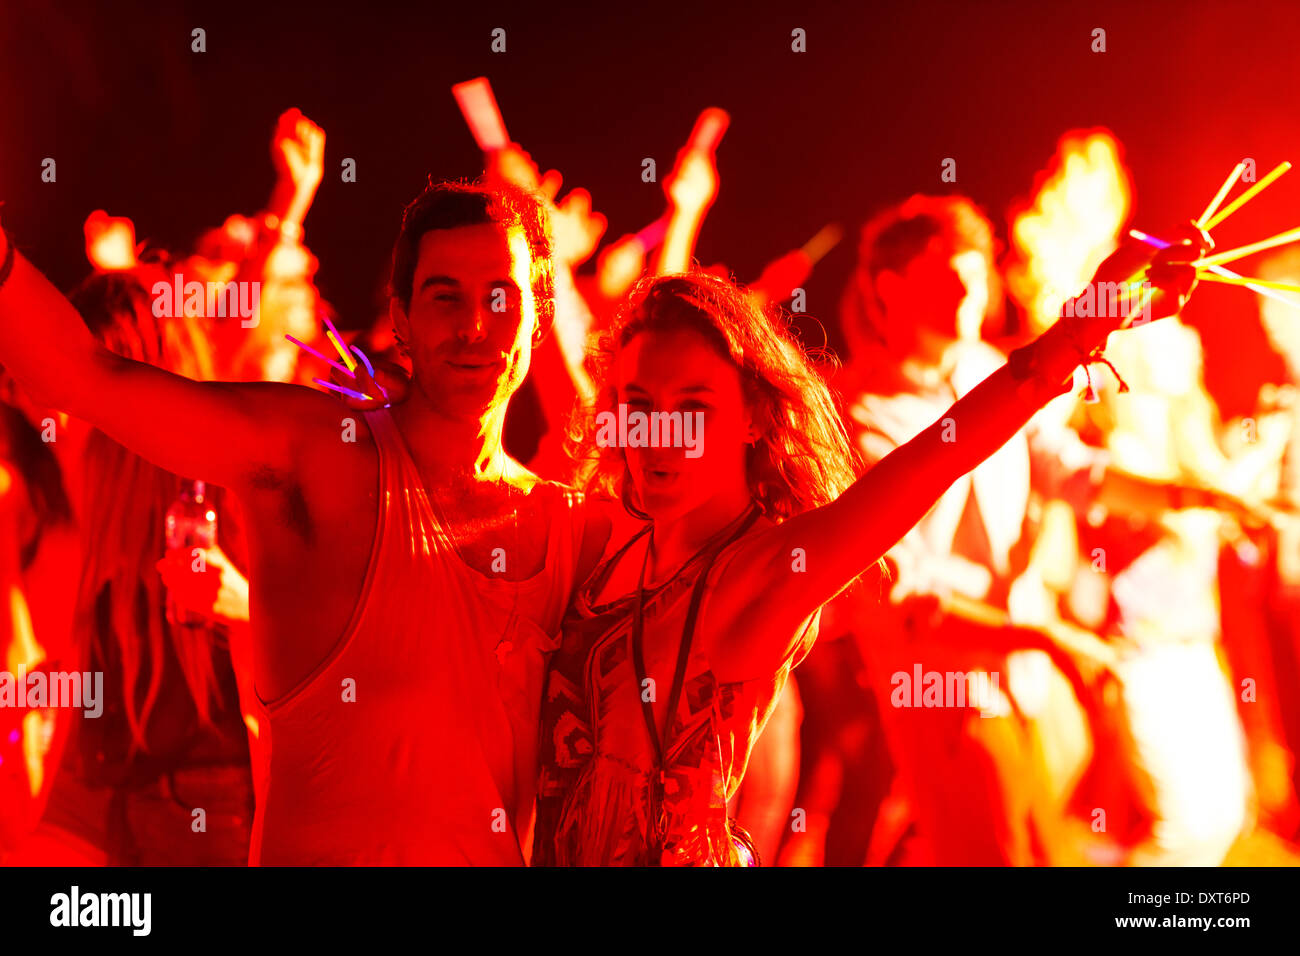 Portrait of couple with glow sticks dancing at music festival - Stock Image